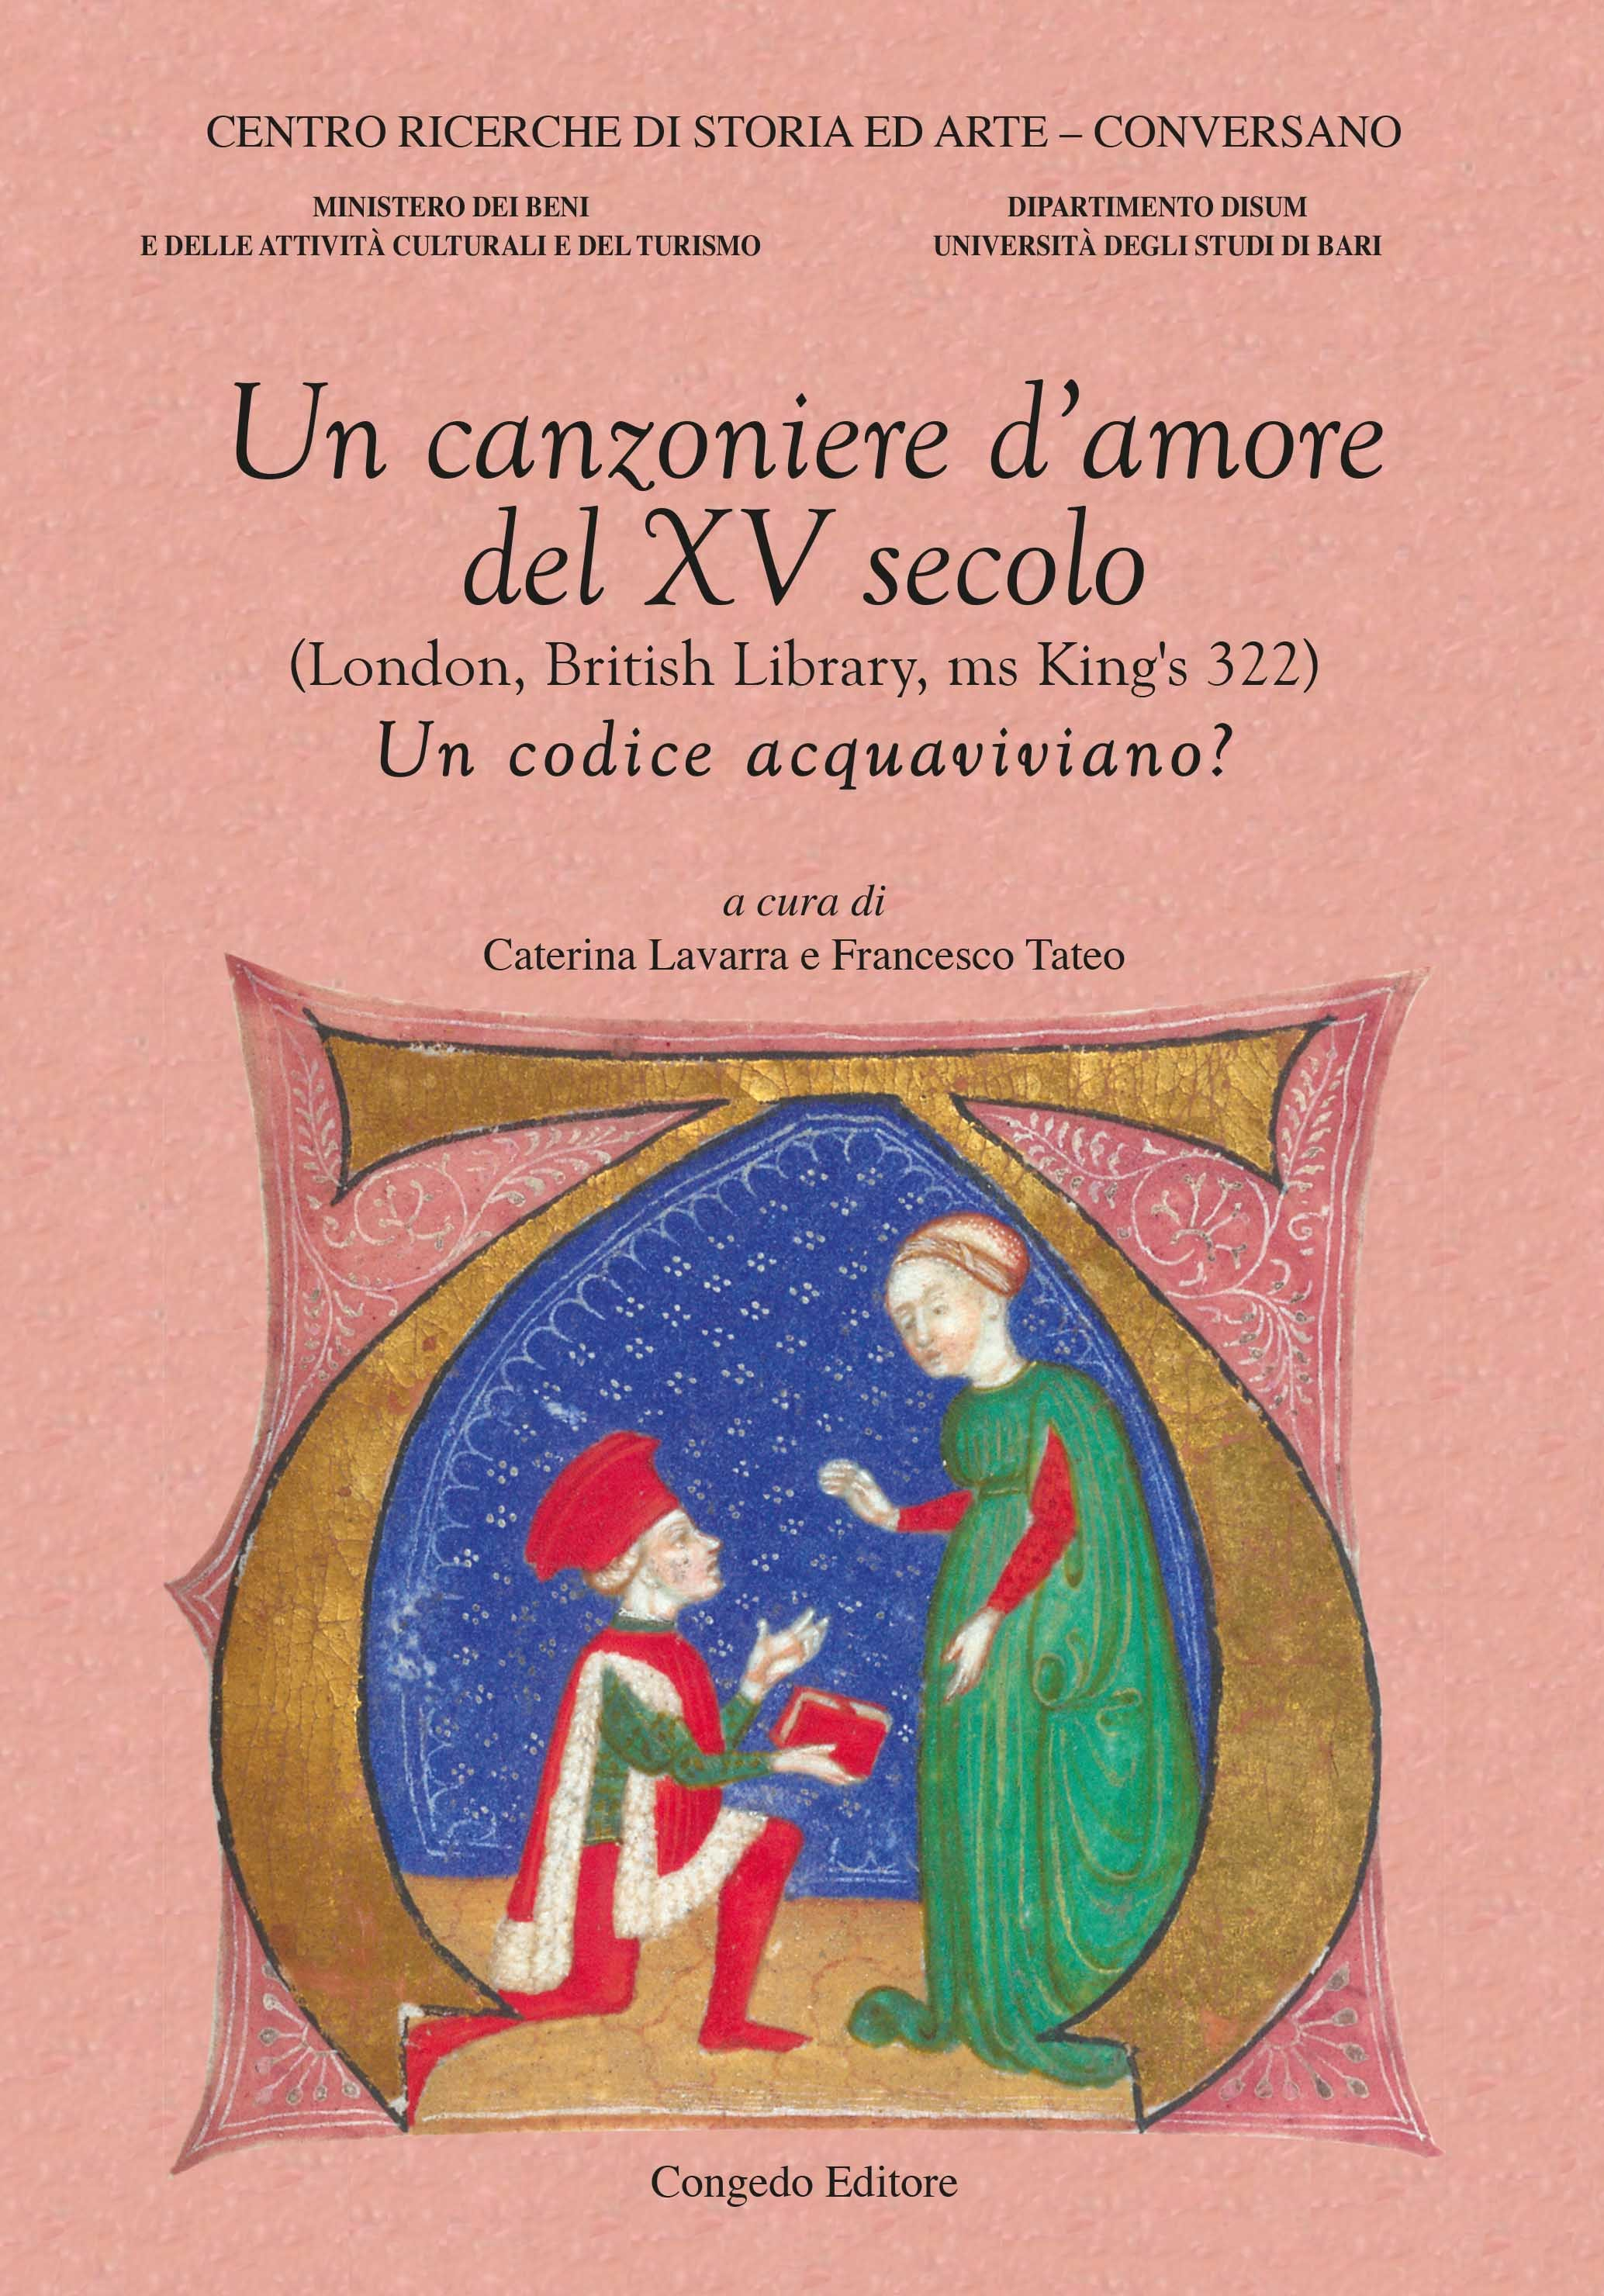 Un canzoniere d'amore del XV secolo (London, British Library, ms King's 322) Un codice acquaviviano?